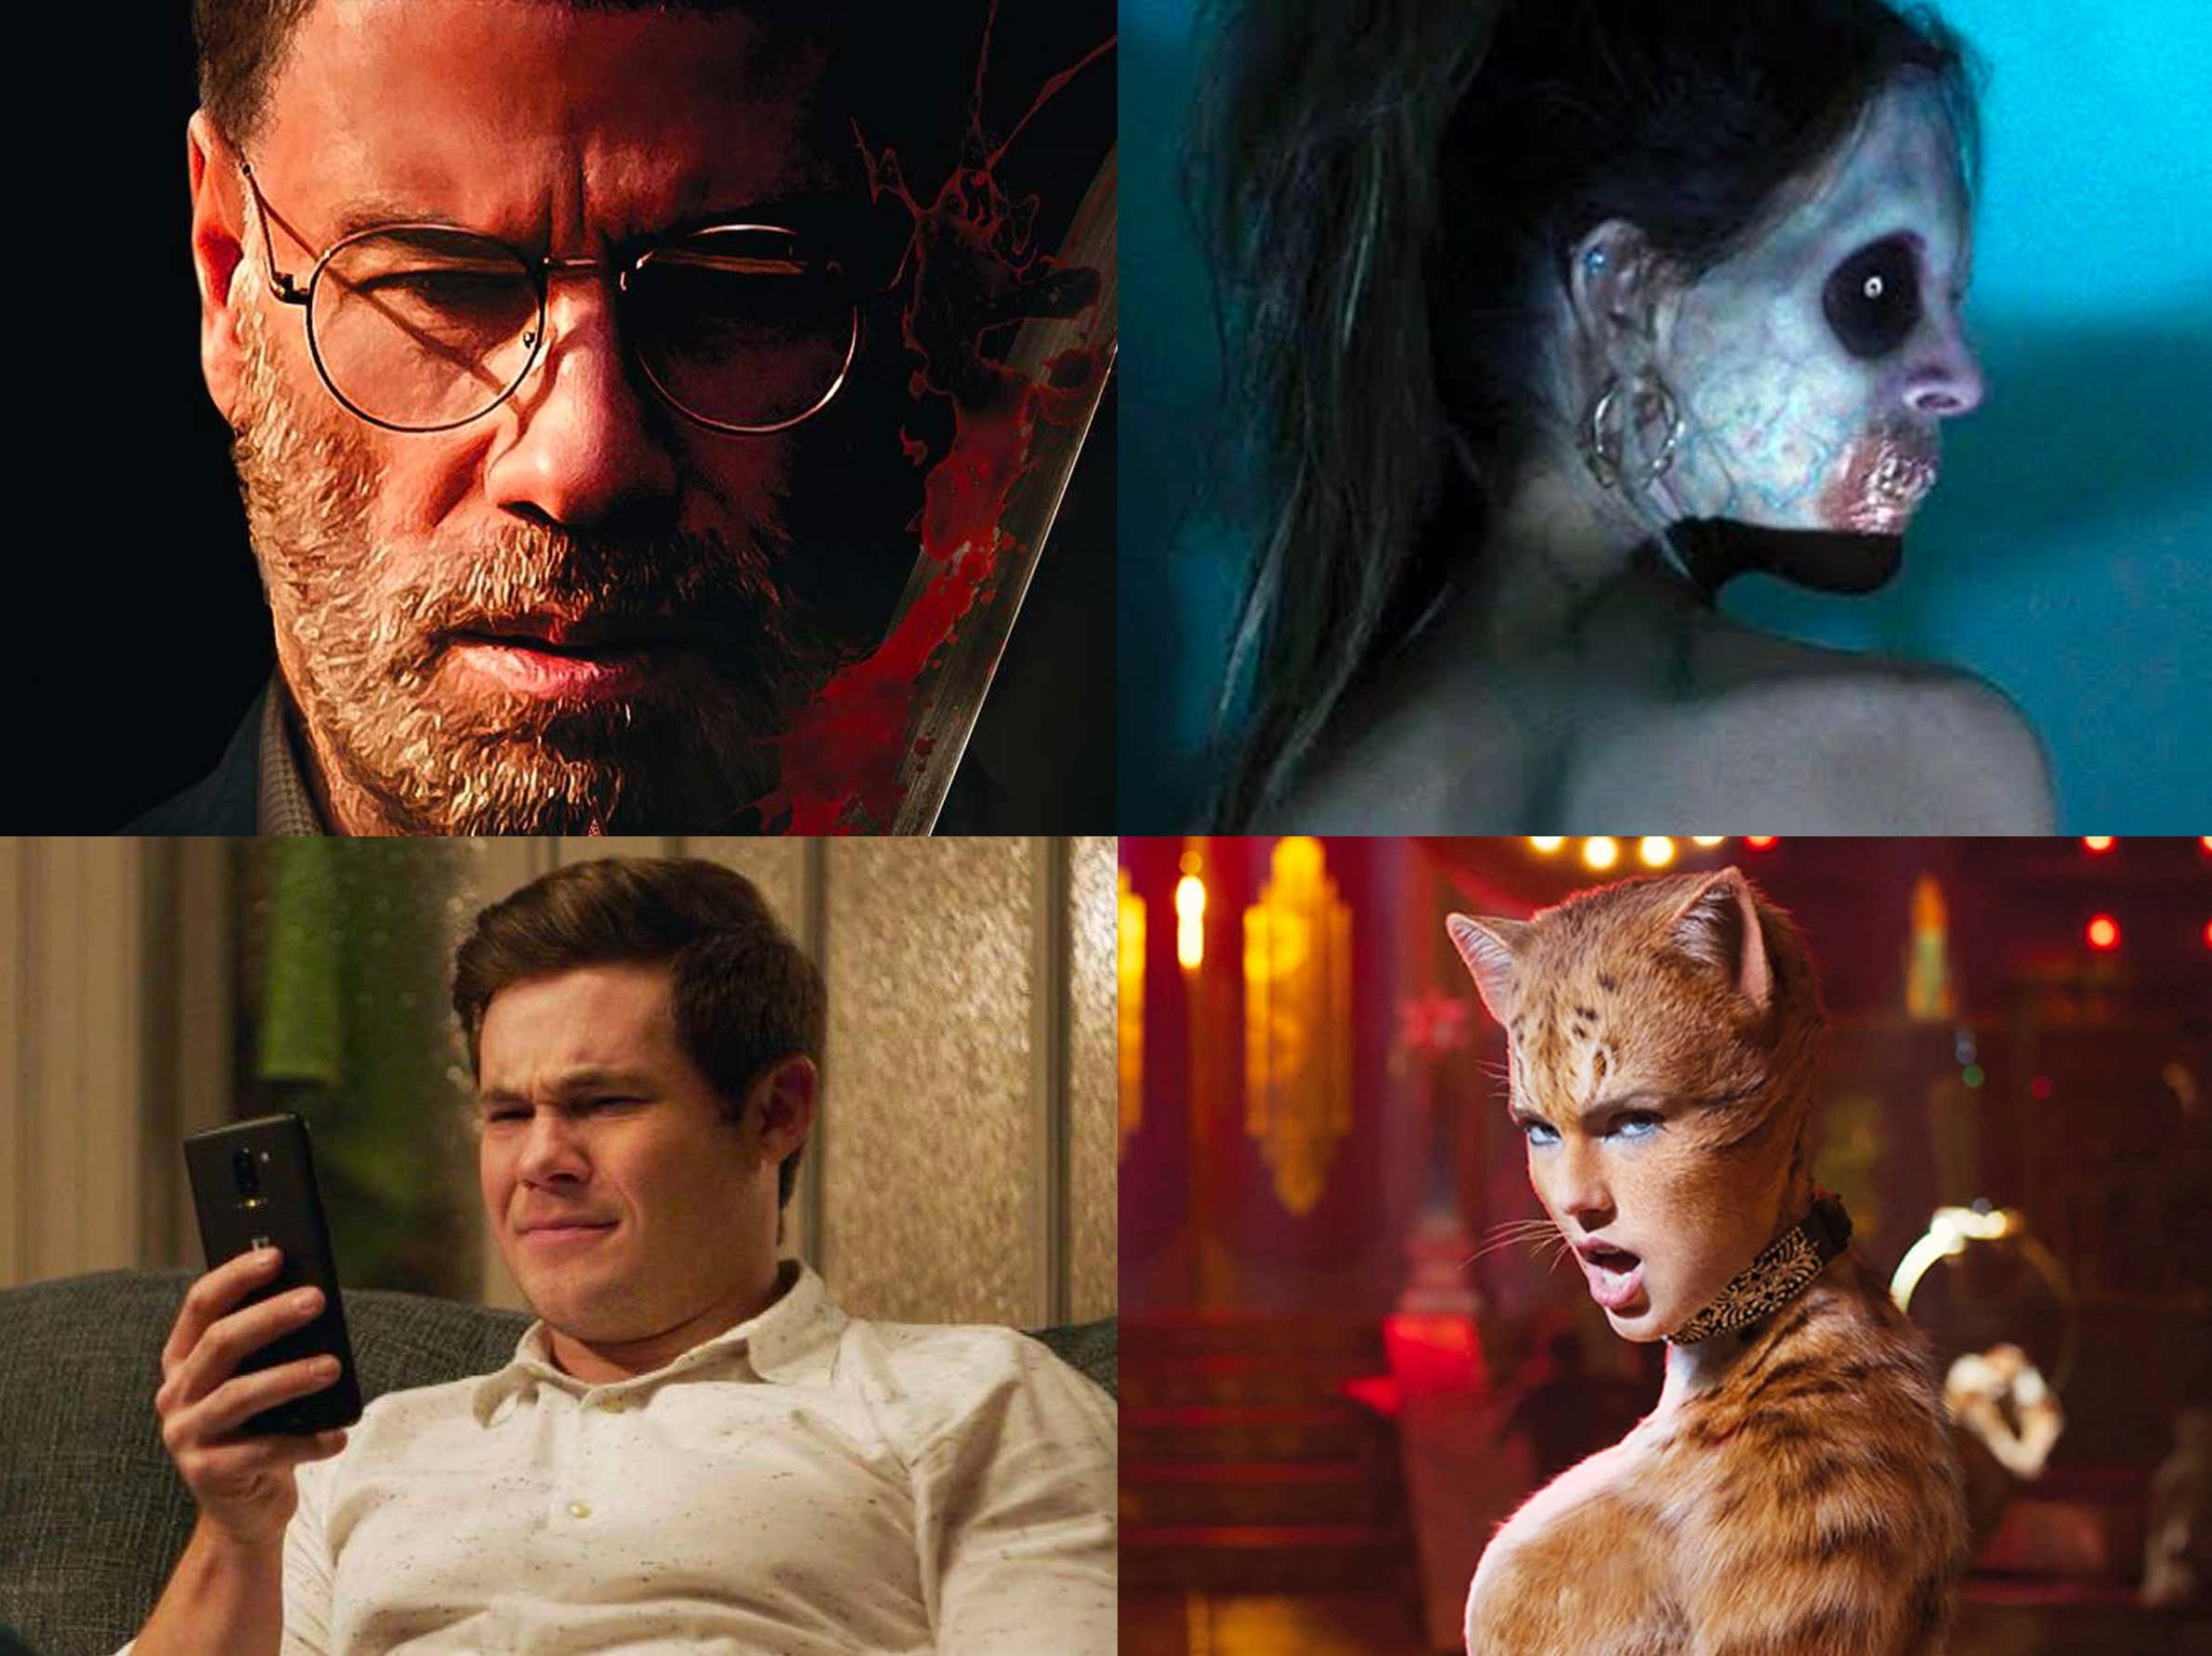 Bottom 10 Worst Movies Of 2020 From YOU, The Audience